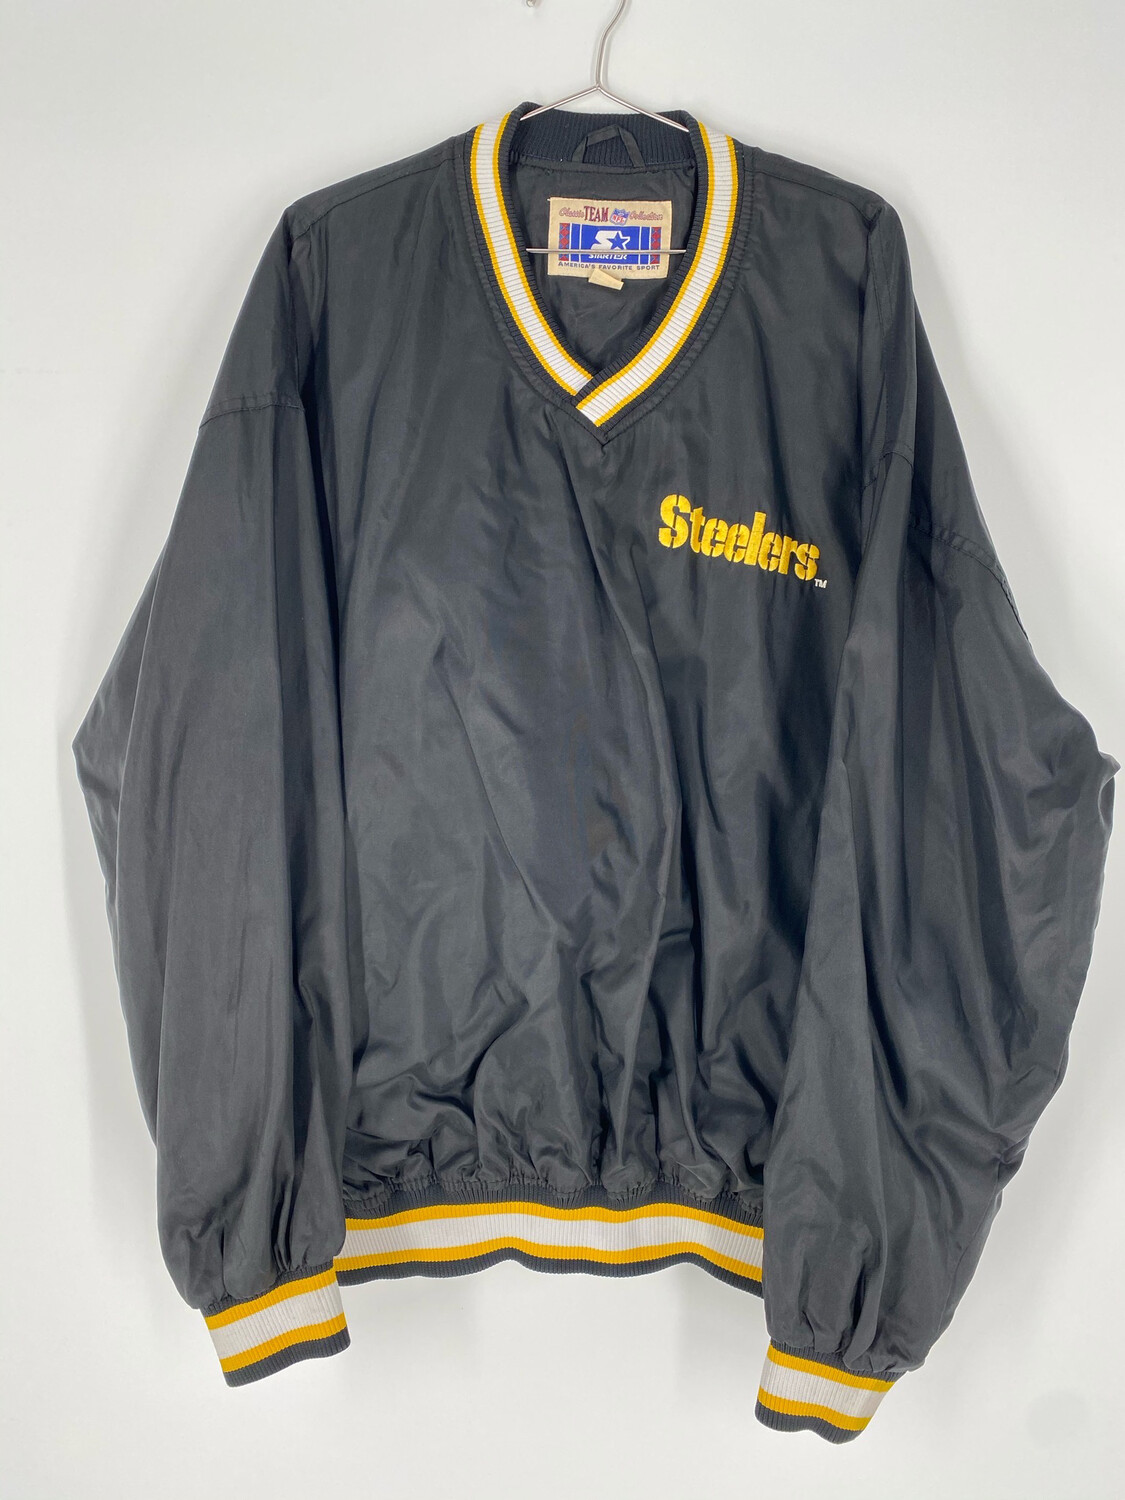 NFL Starter Steelers Embroidered Windbreaker Size XL